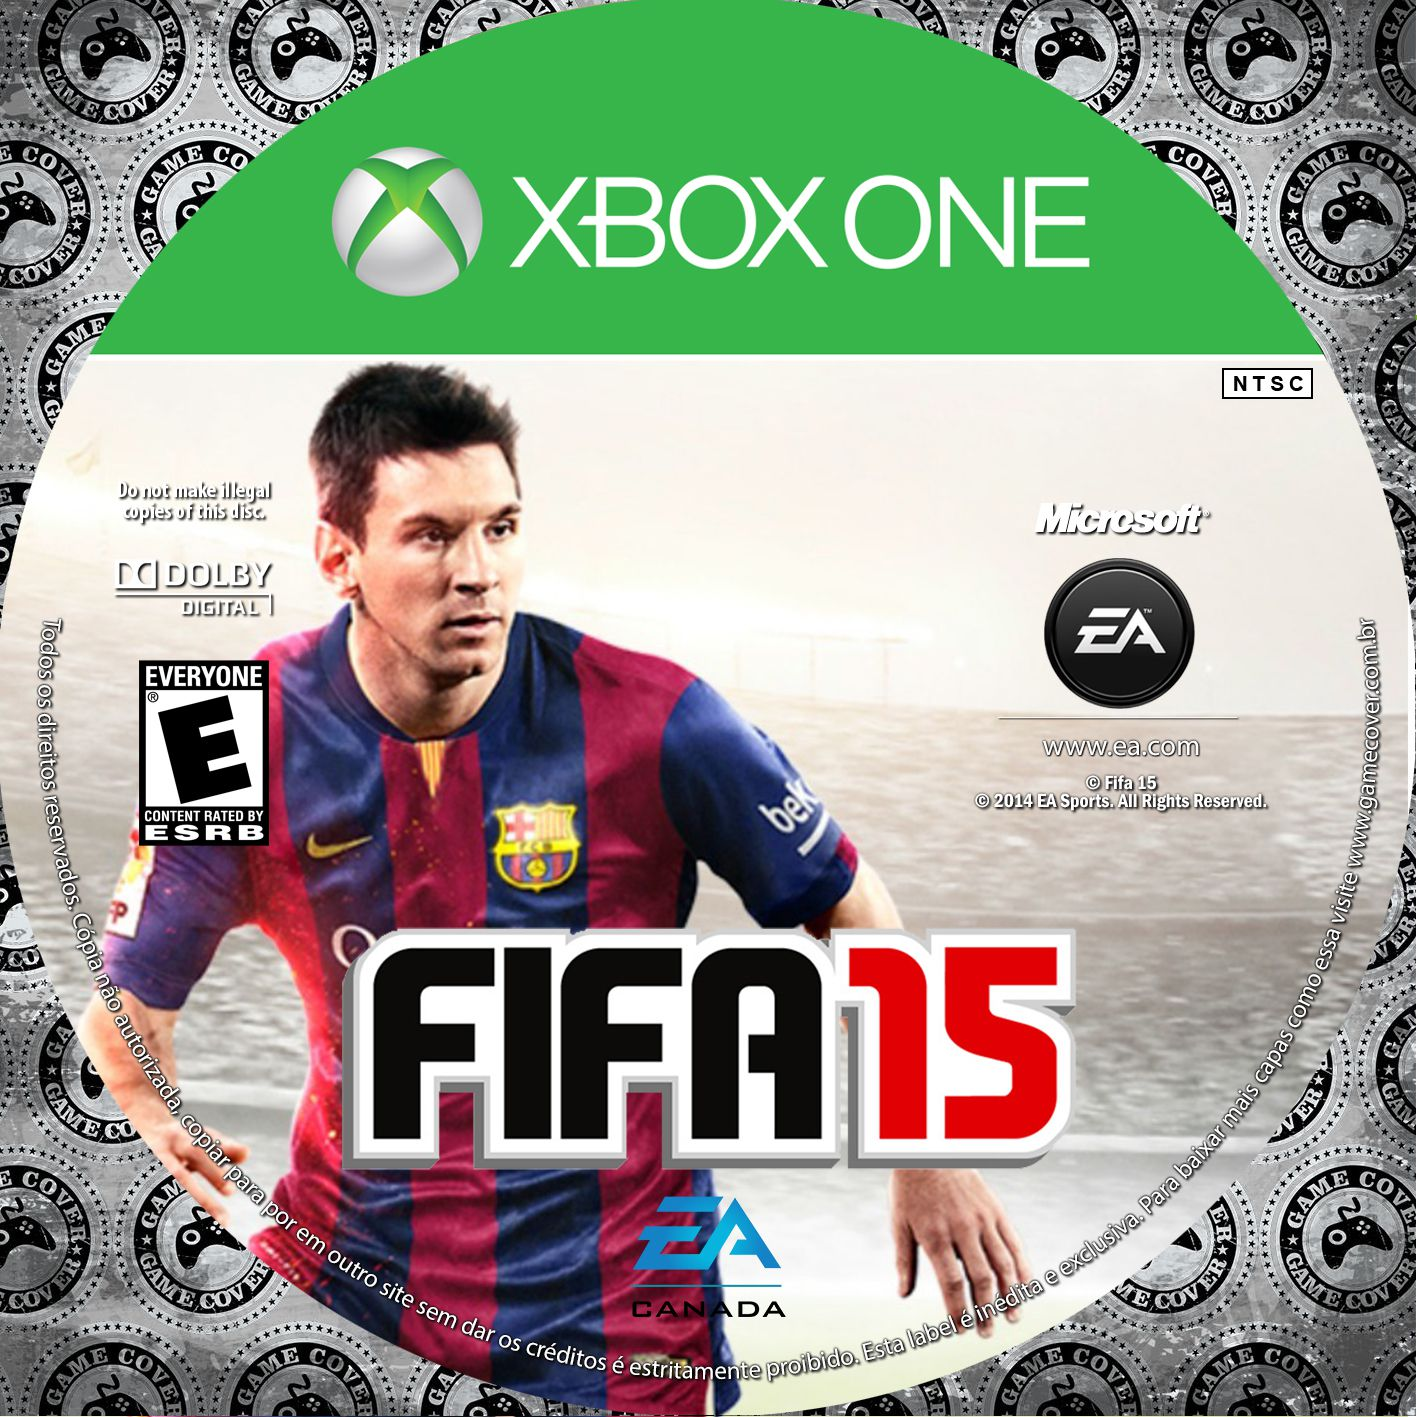 Label Fifa 15 Xbox One [Exclusiva]